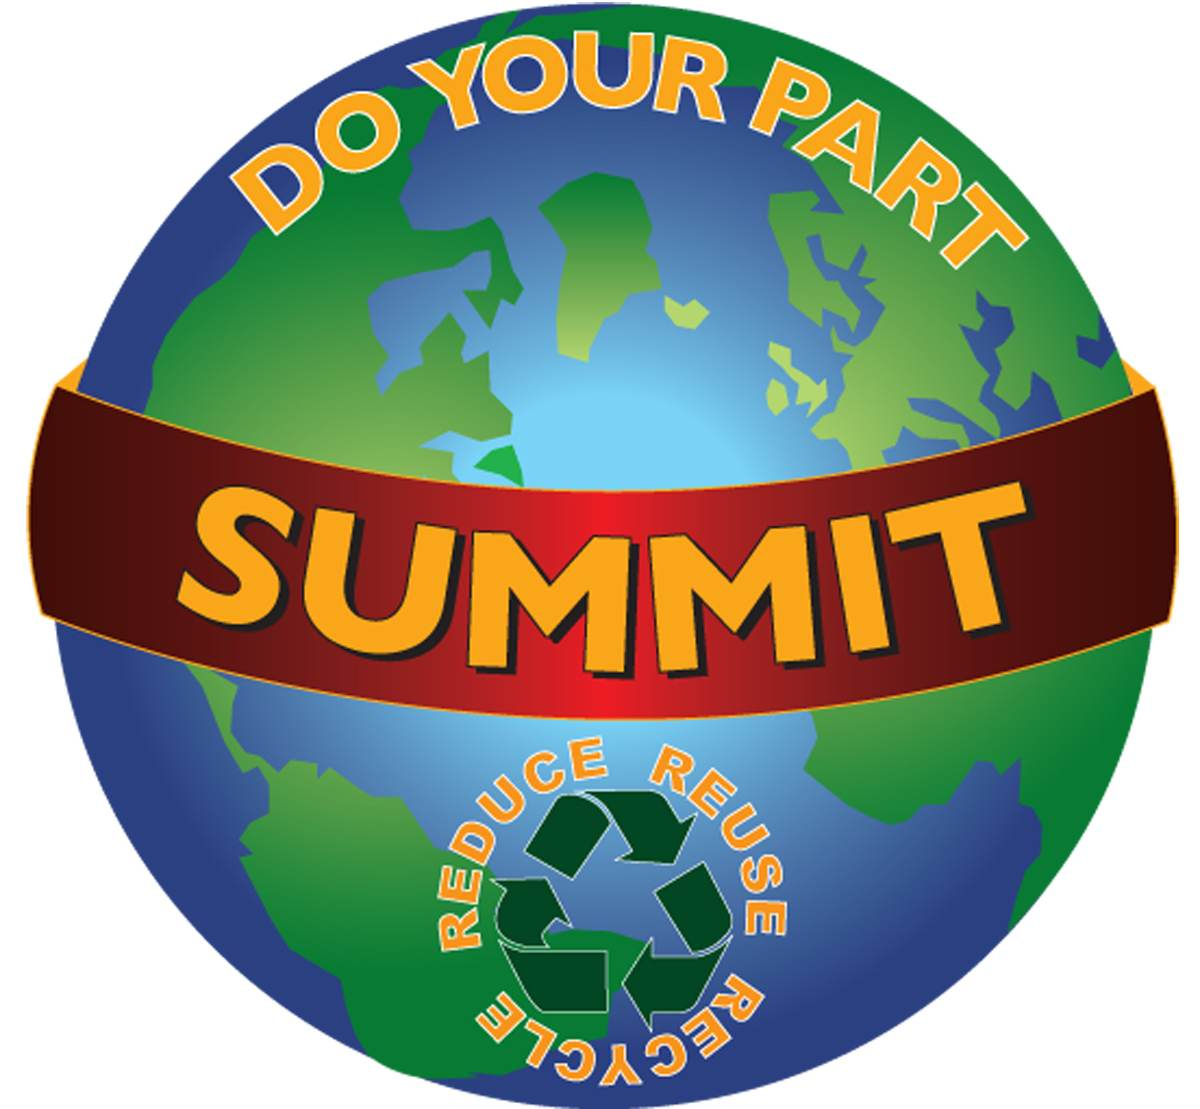 globe - Do Your Part for Summit